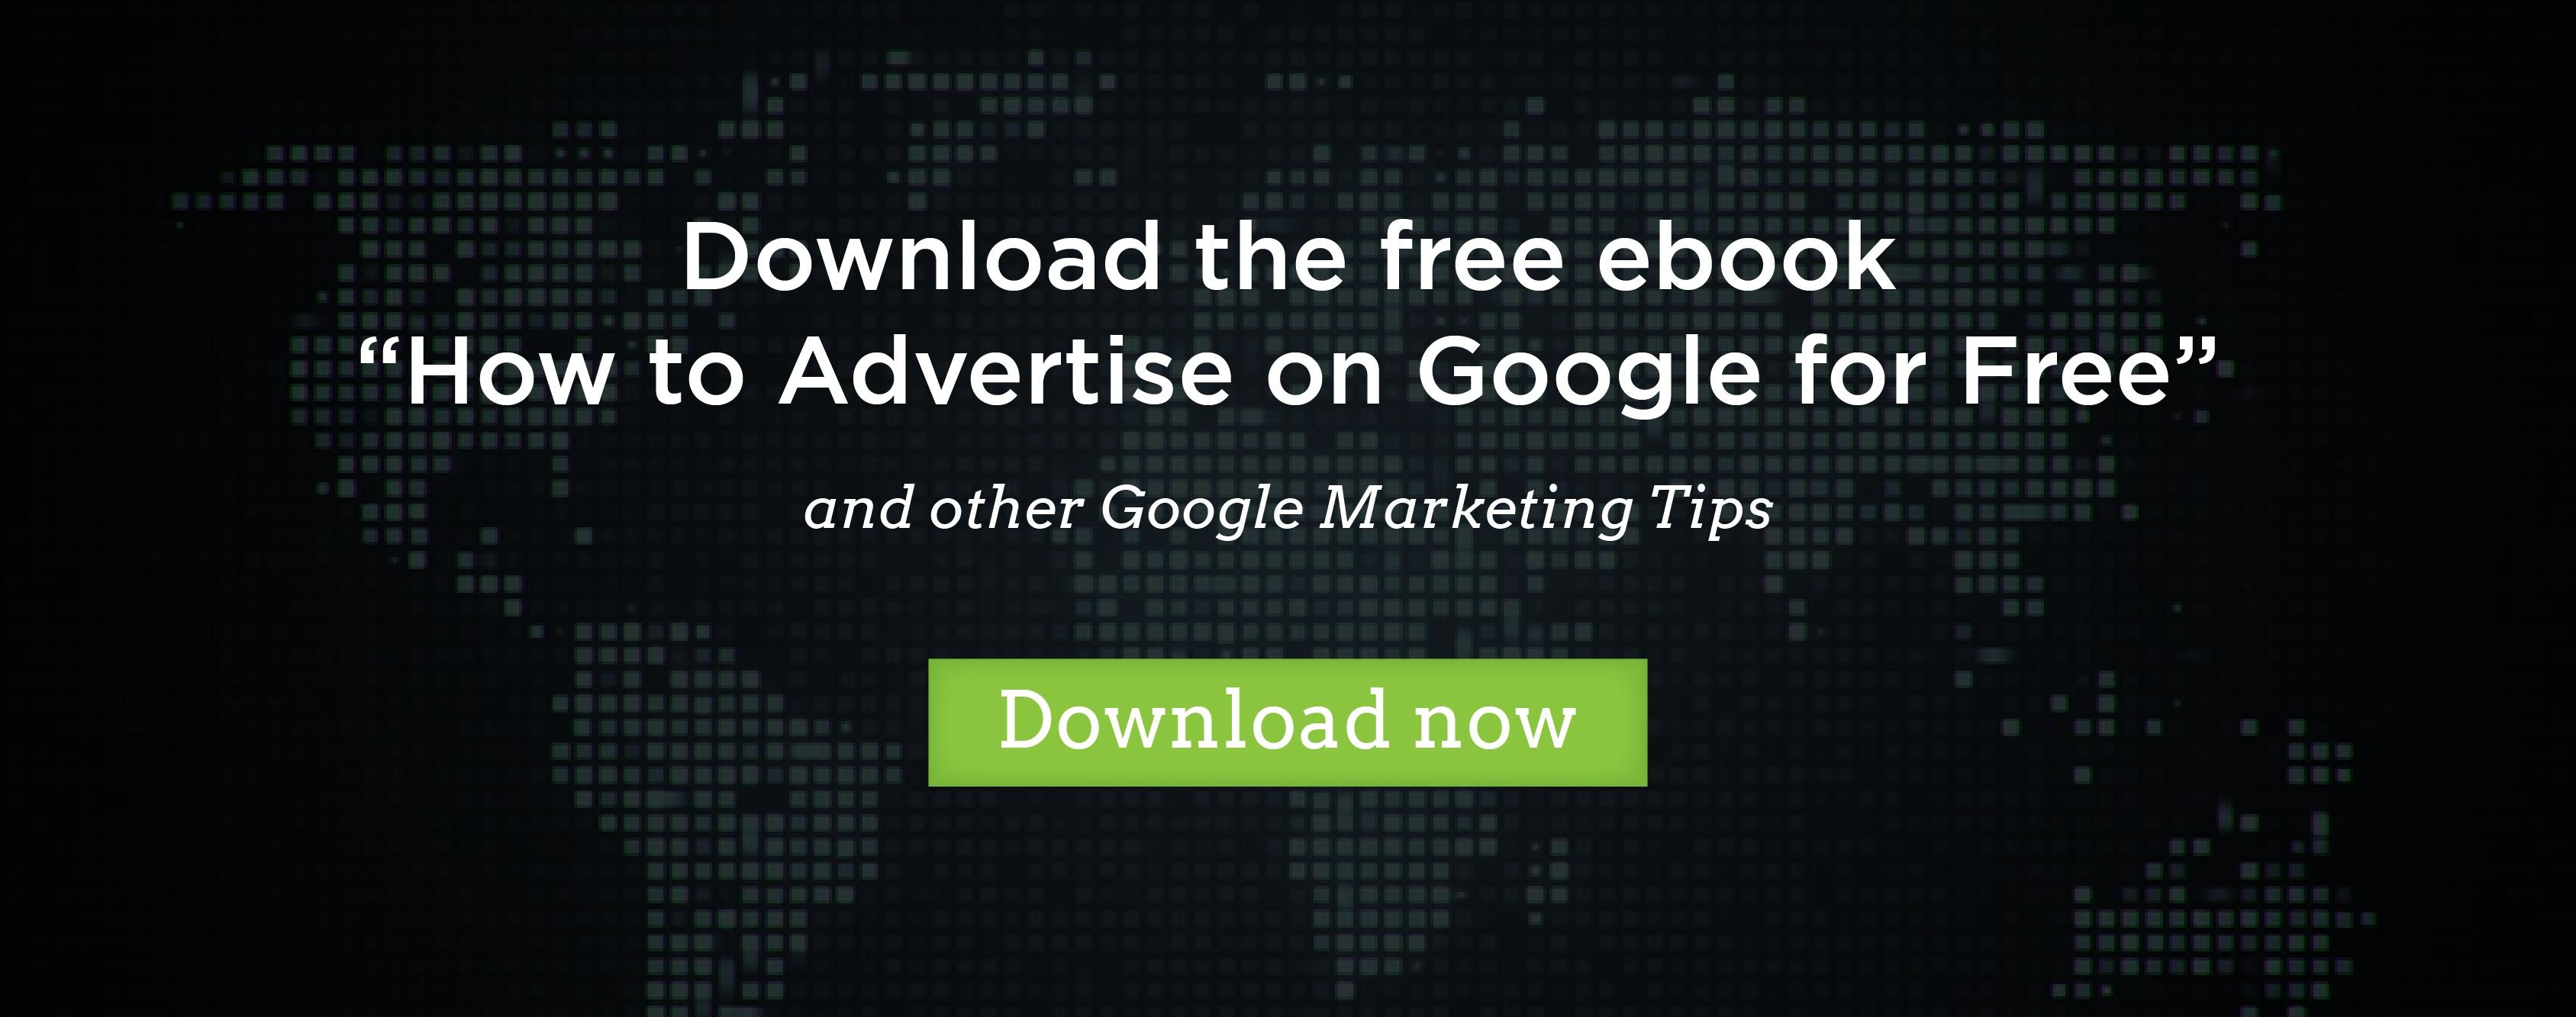 "Download free ebook ""How to advertise on Google for free"""